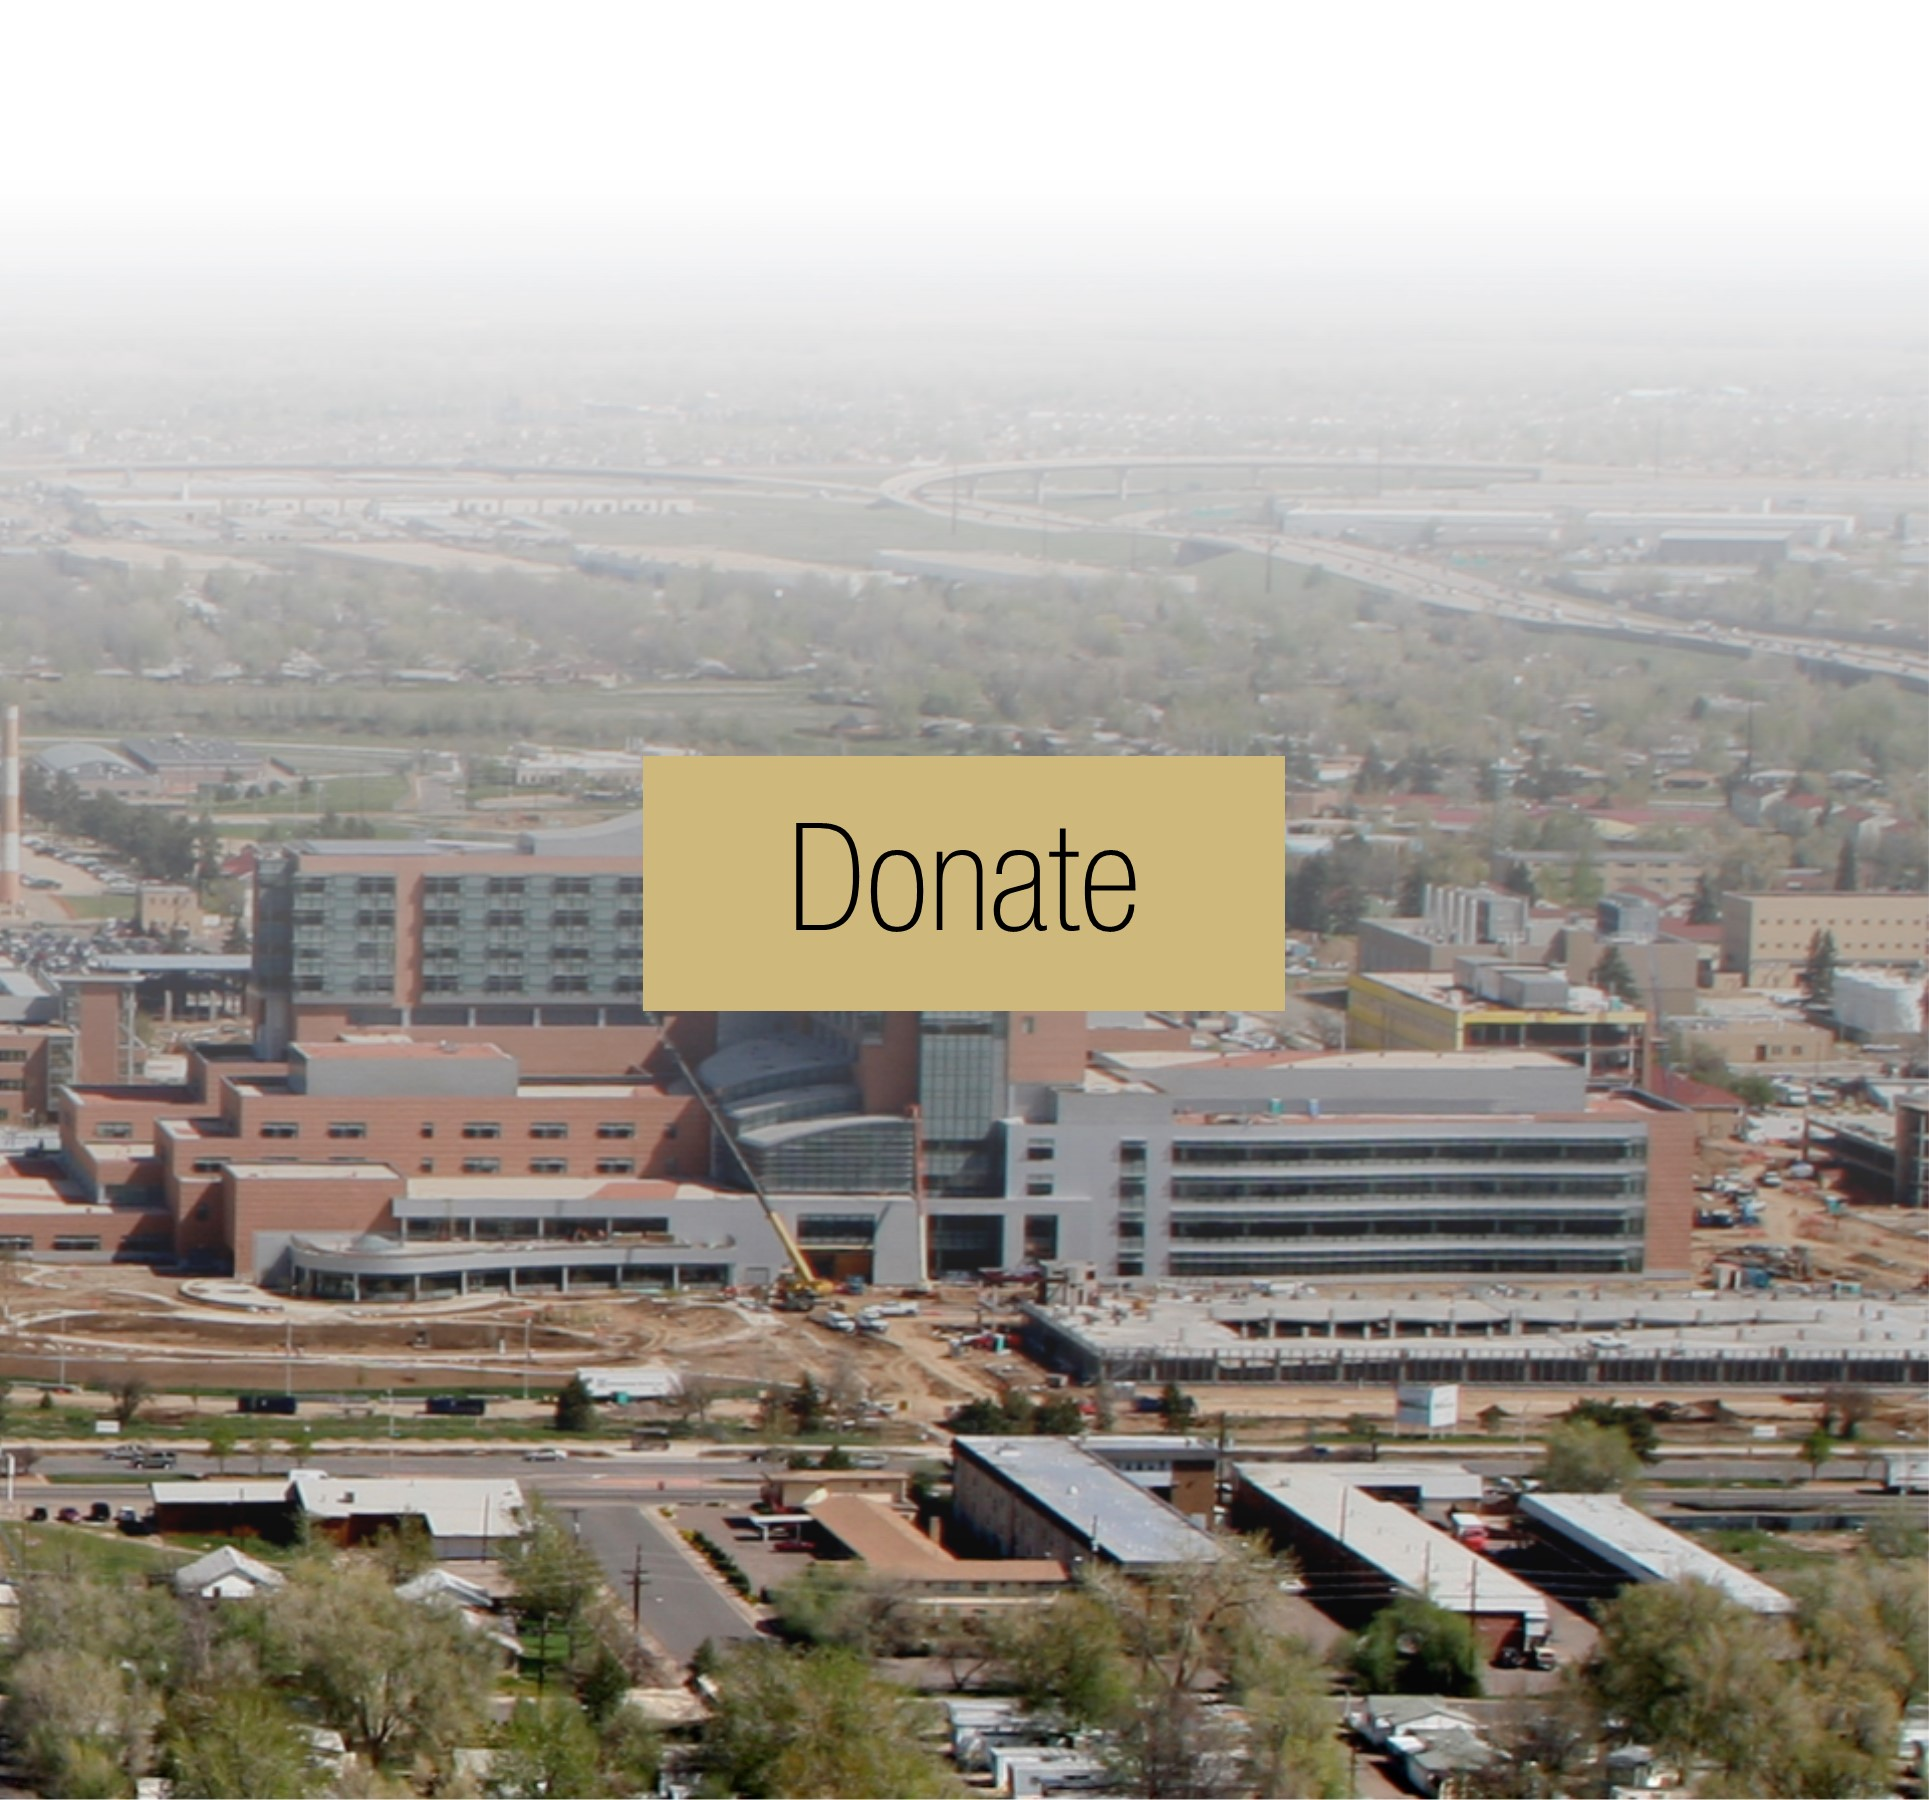 Home | Division of Hematology at the University of Colorado